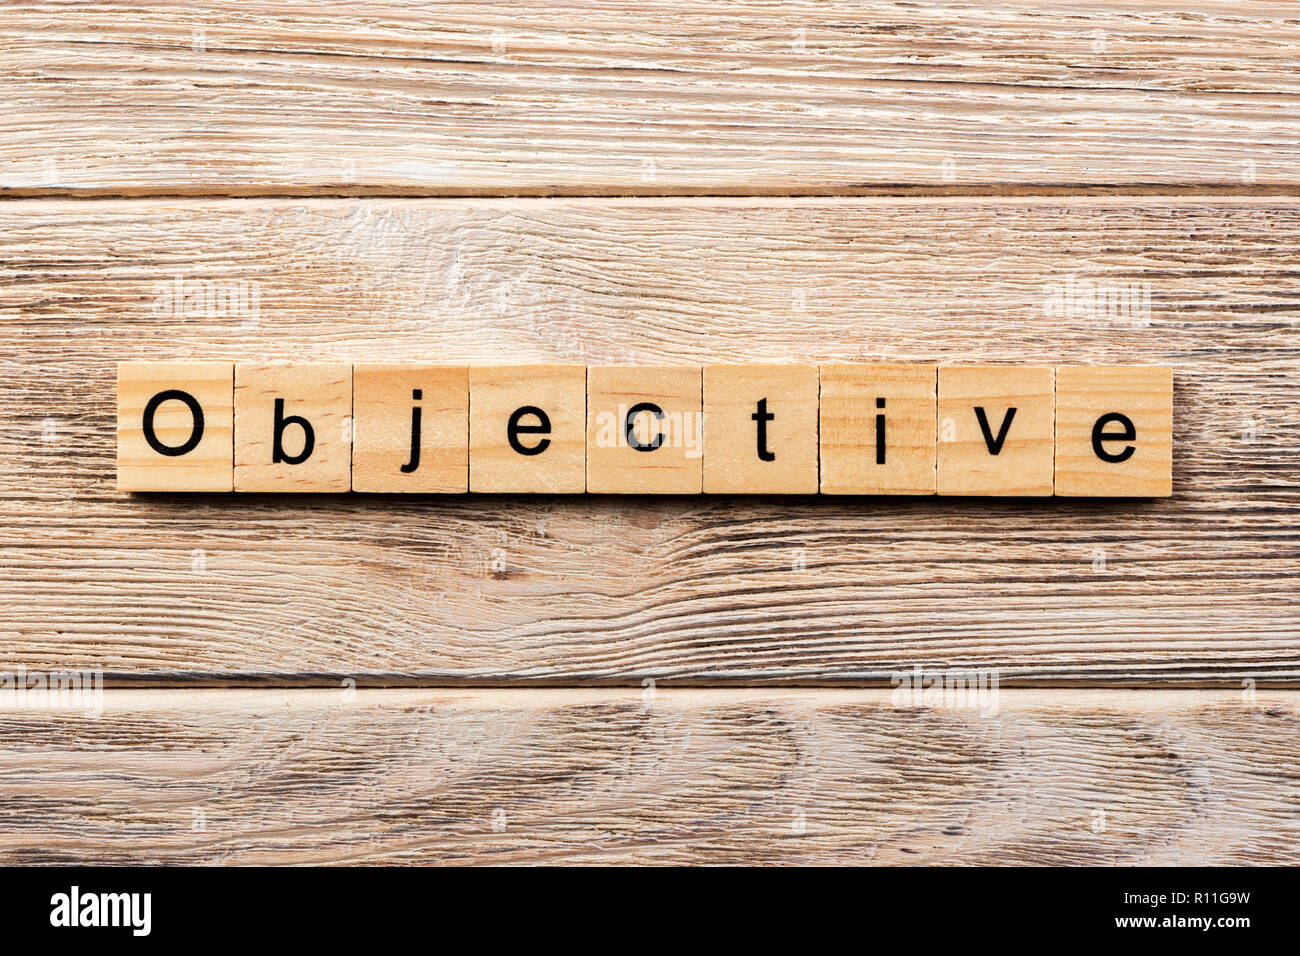 objective word written on wood block. objective text on table, concept. - Stock Image